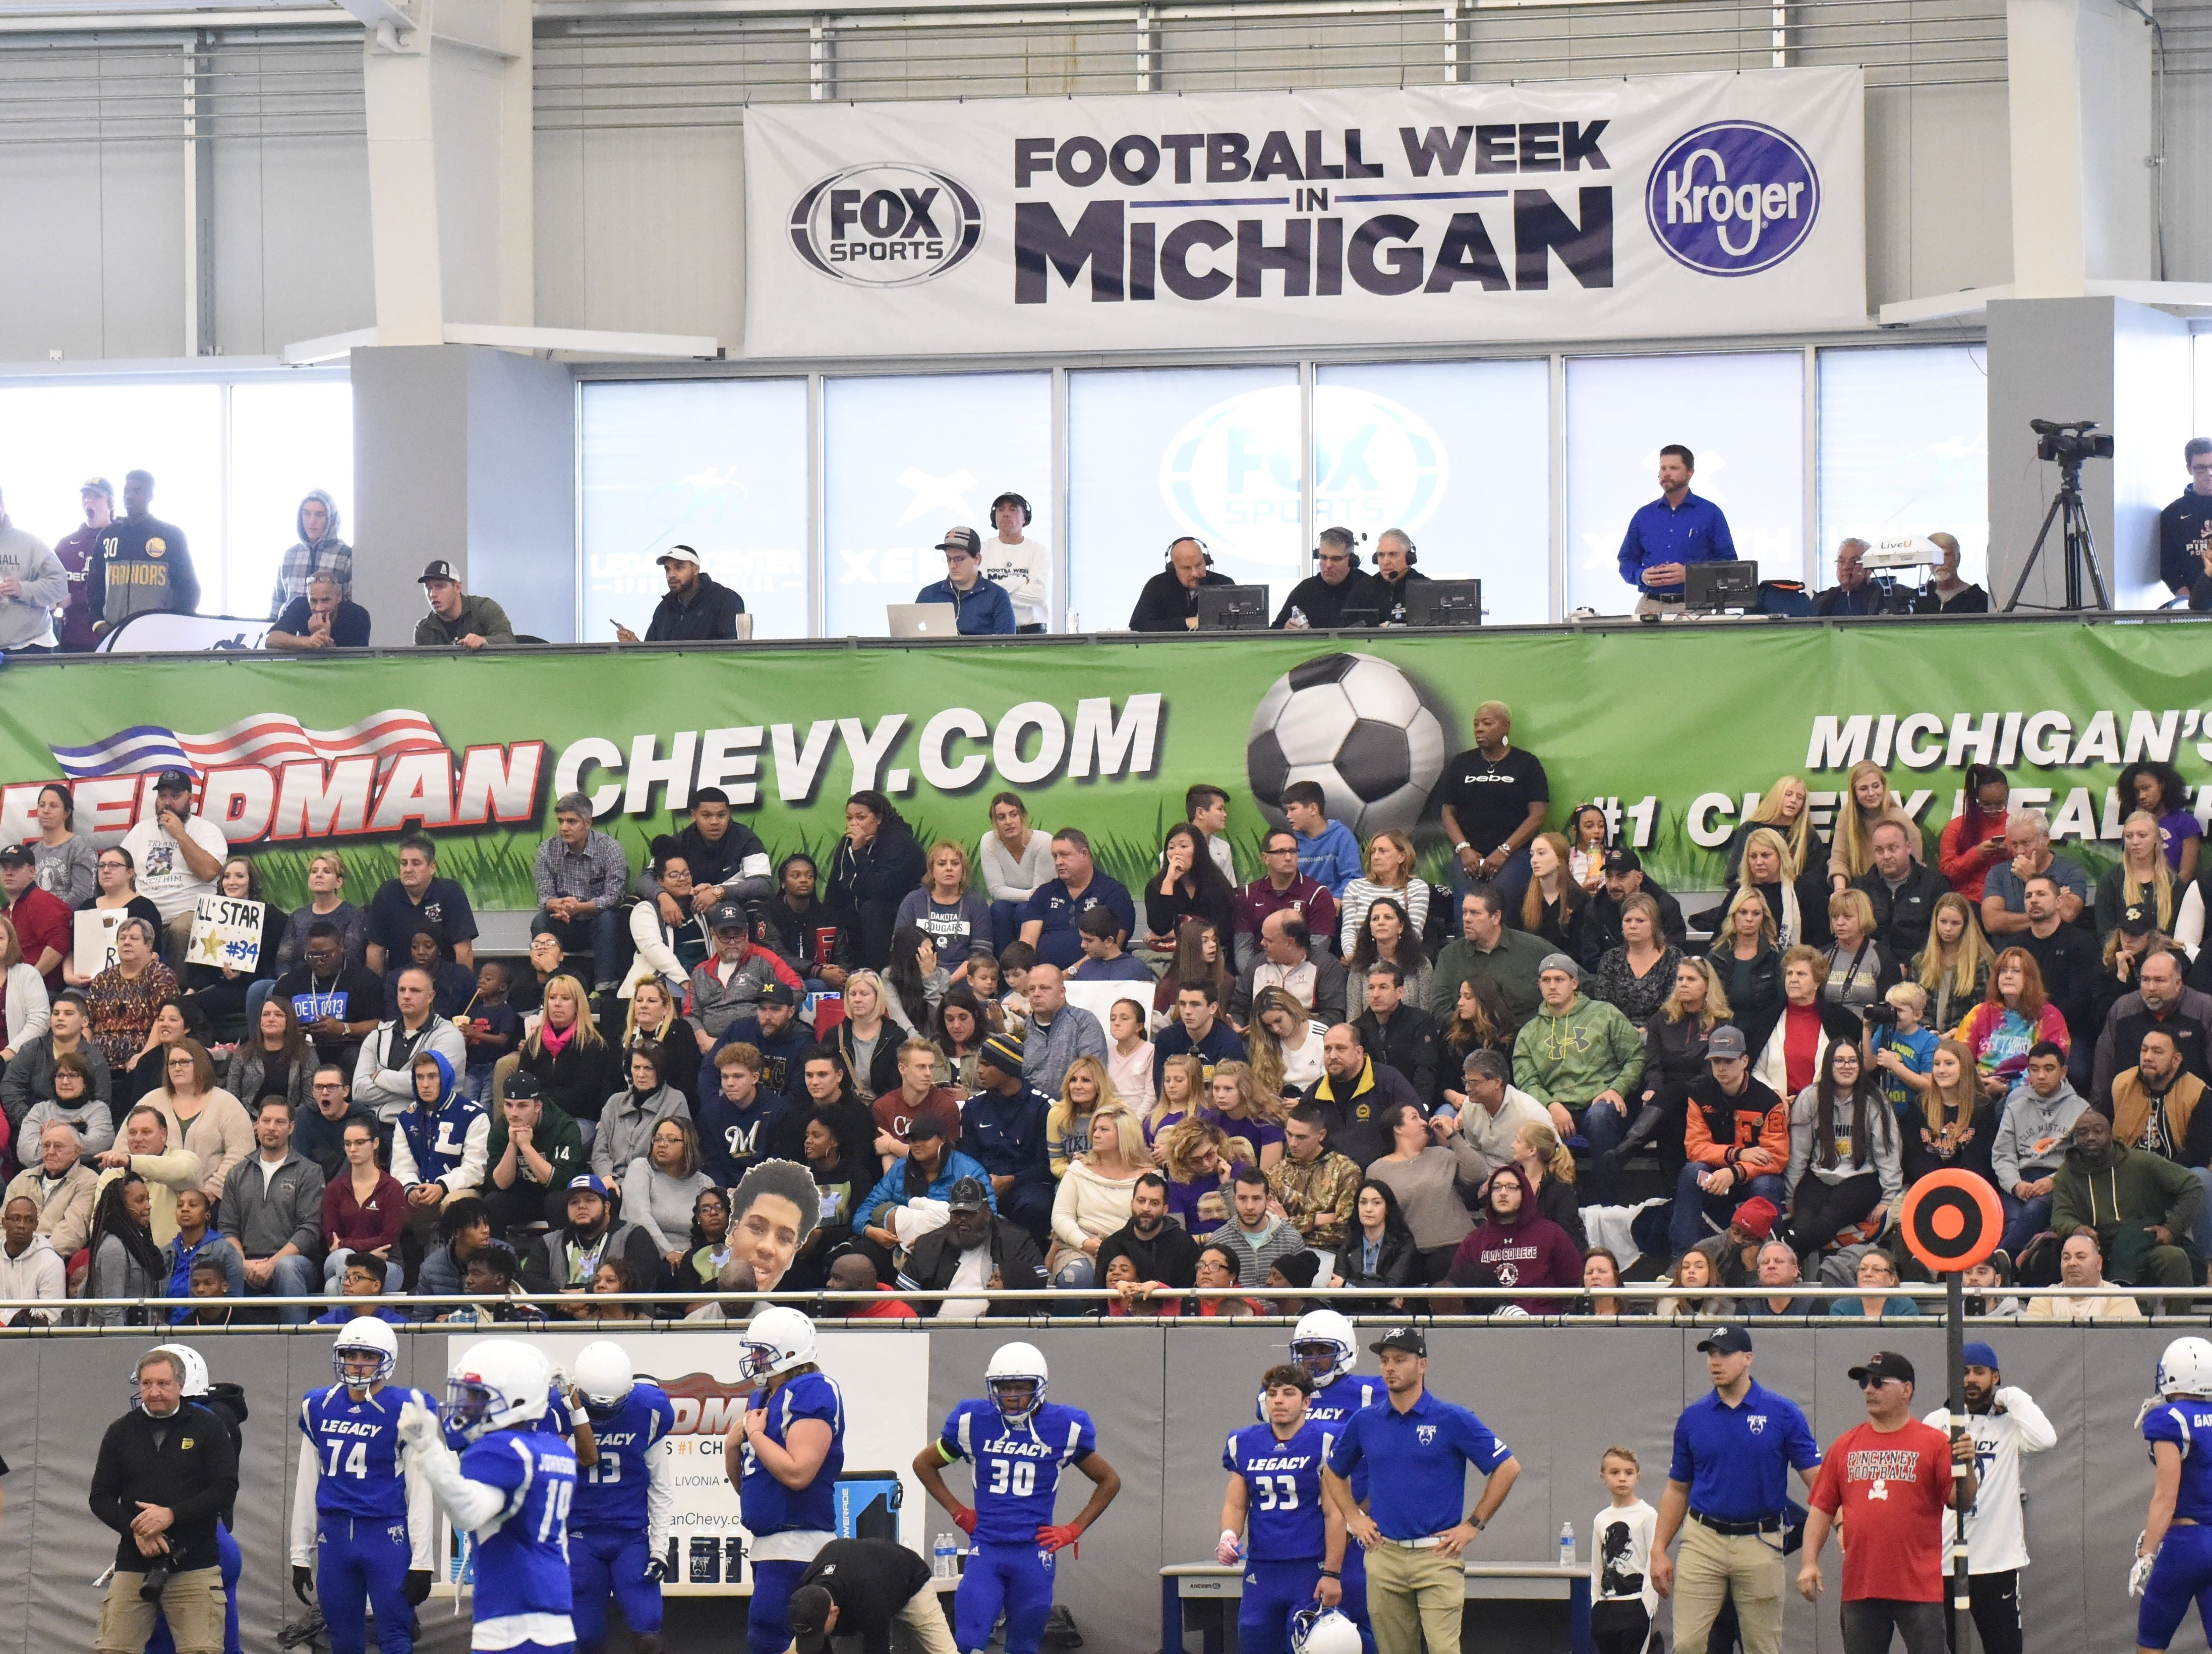 Legacy Center Sports Complex in Brighton was filled with football fans on Sunday afternoon.